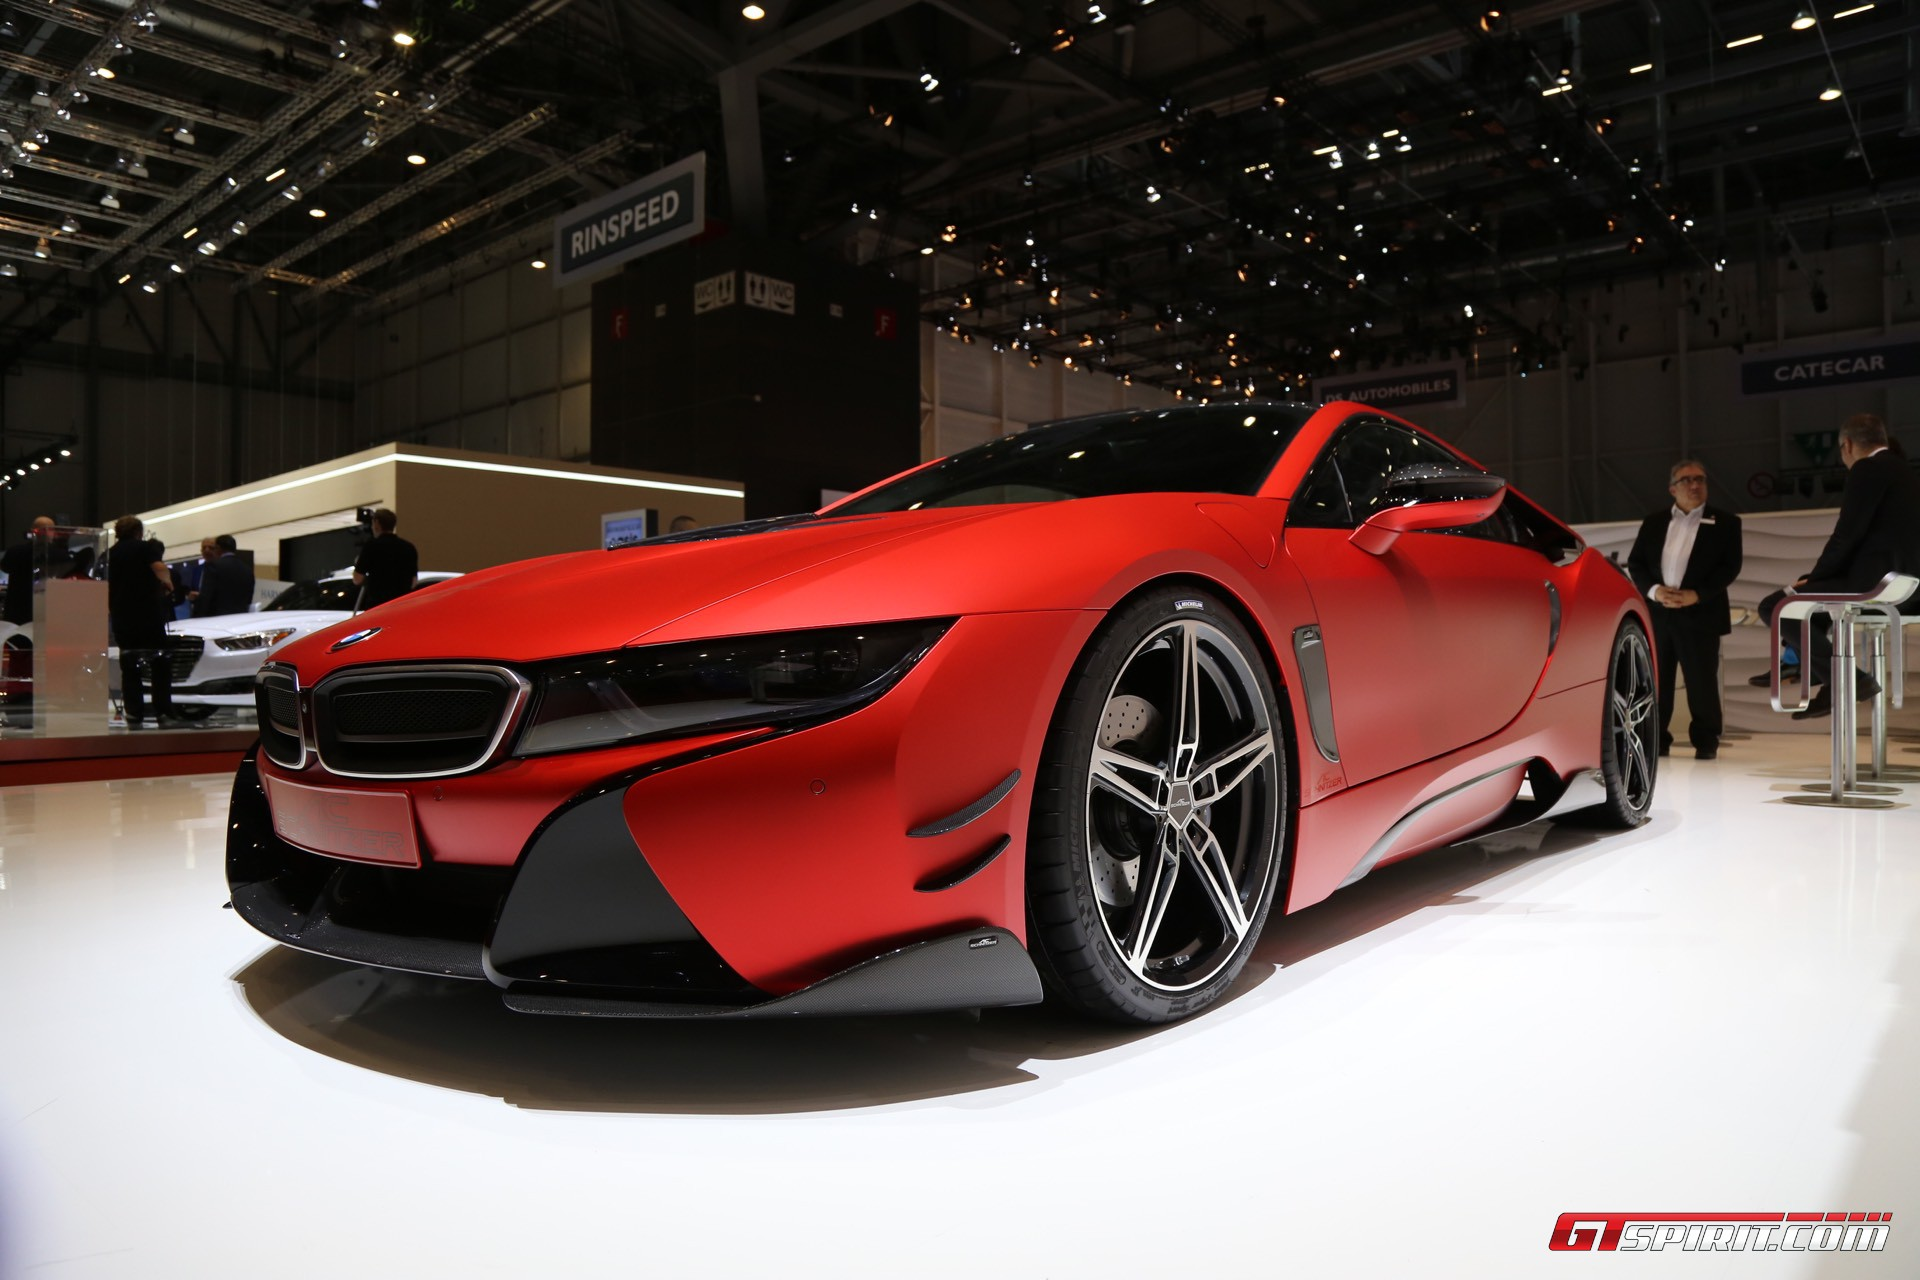 Bmw I8 2019 Bmw I8 Roadster Updated I8 Coupe Debut In L A Bmw I8